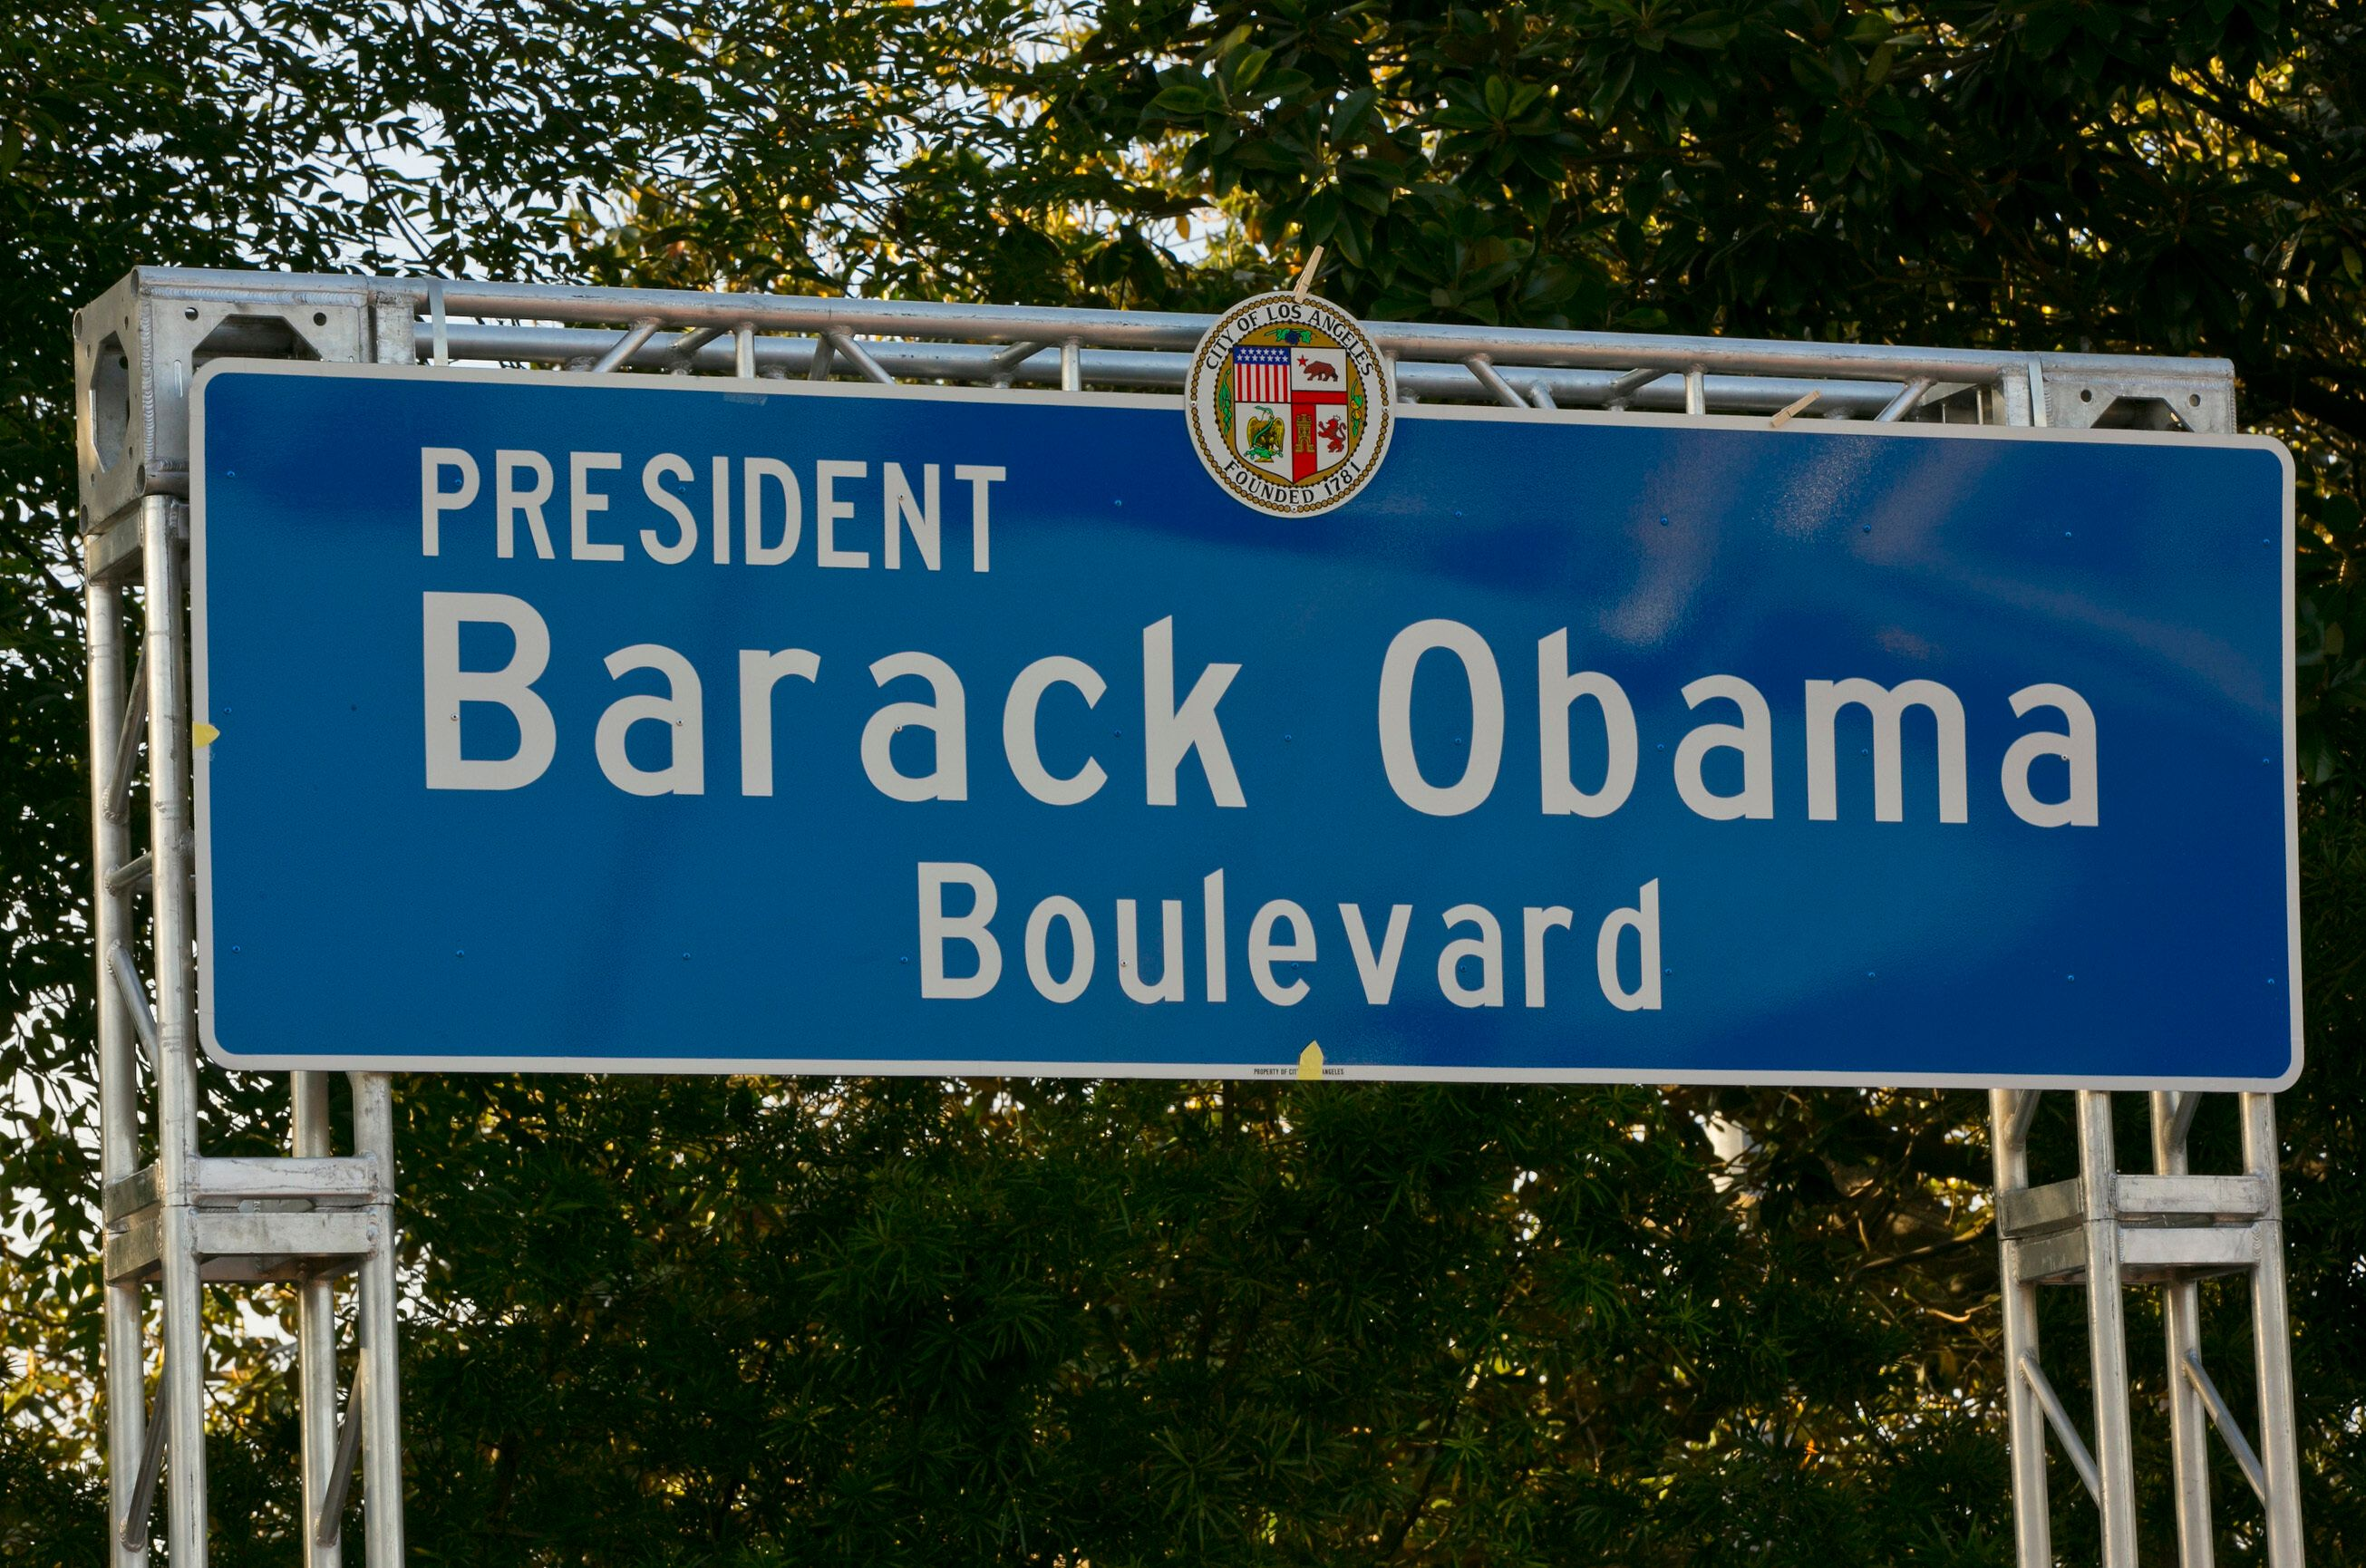 A newly unveiled Obama Boulevard sign is seen in Los Angeles, Saturday, May 4, 2019. A stretch of road in Los Angeles was renamed after former President Barack Obama during a festival and unveiling ceremony Saturday.  The Obama Boulevard will replace Rodeo Road, a 3 ½-mile street that runs across the city's historic black neighborhood.  (AP Photo/Damian Dovarganes)